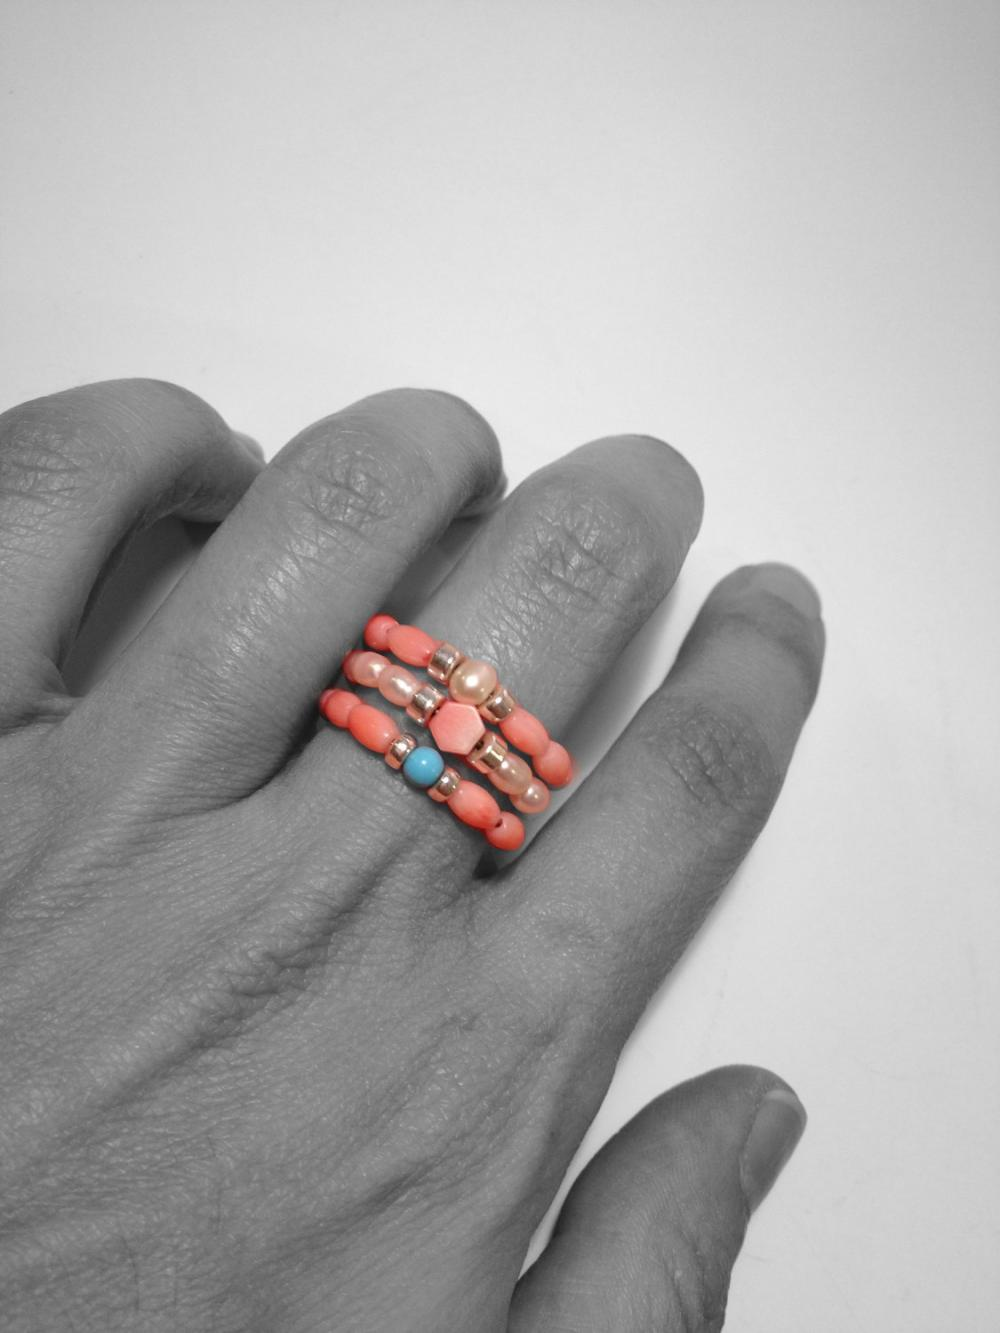 Coral Reef Set of Three Stacking Rings with Freshwater Pearls Coral Turquoise Gemstones and Sterling Silver Bead Fresh Summer Accessory Gift